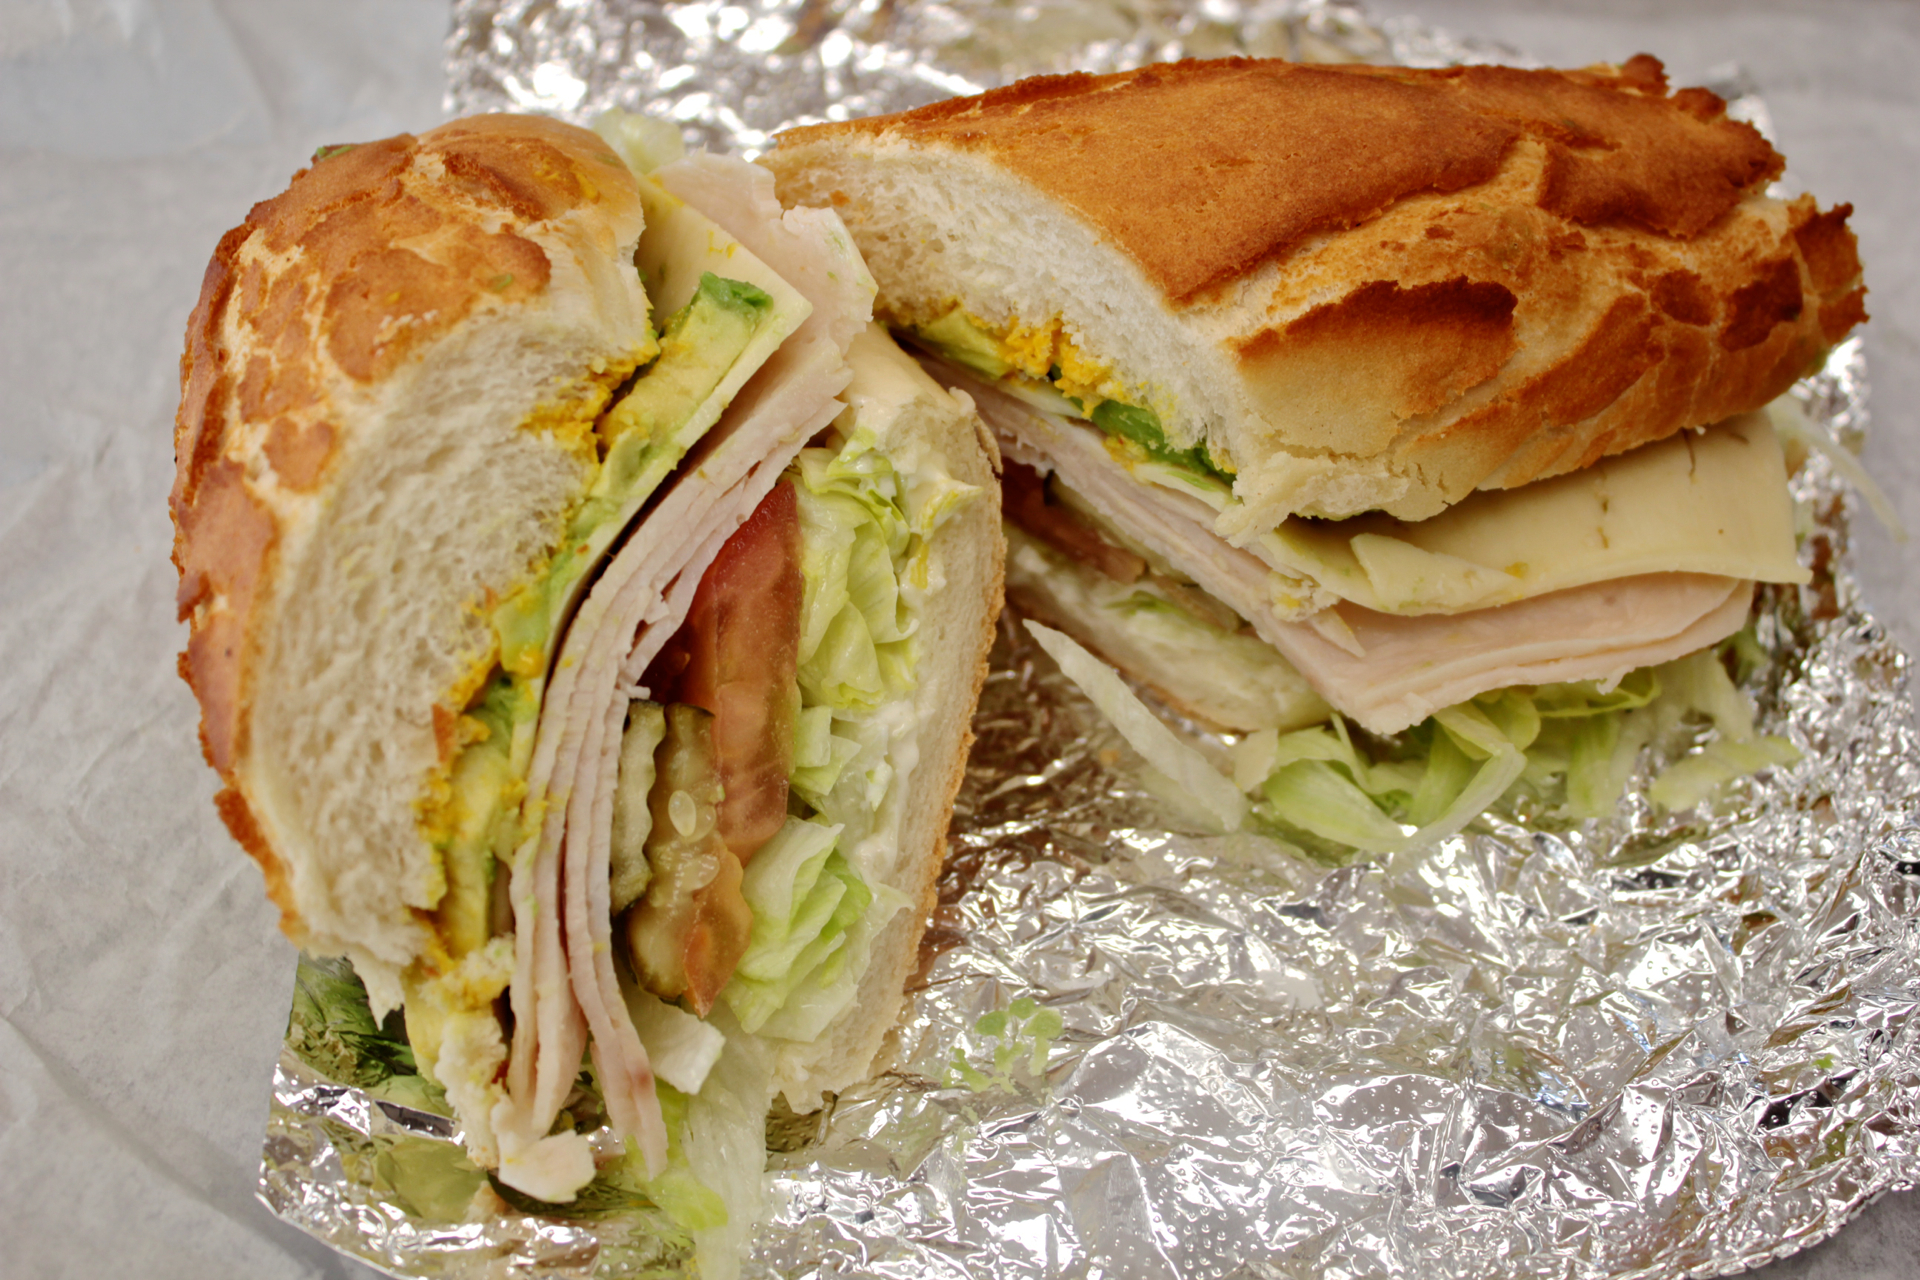 The turkey avocado sandwich at Roger's Deli & Doughnuts.